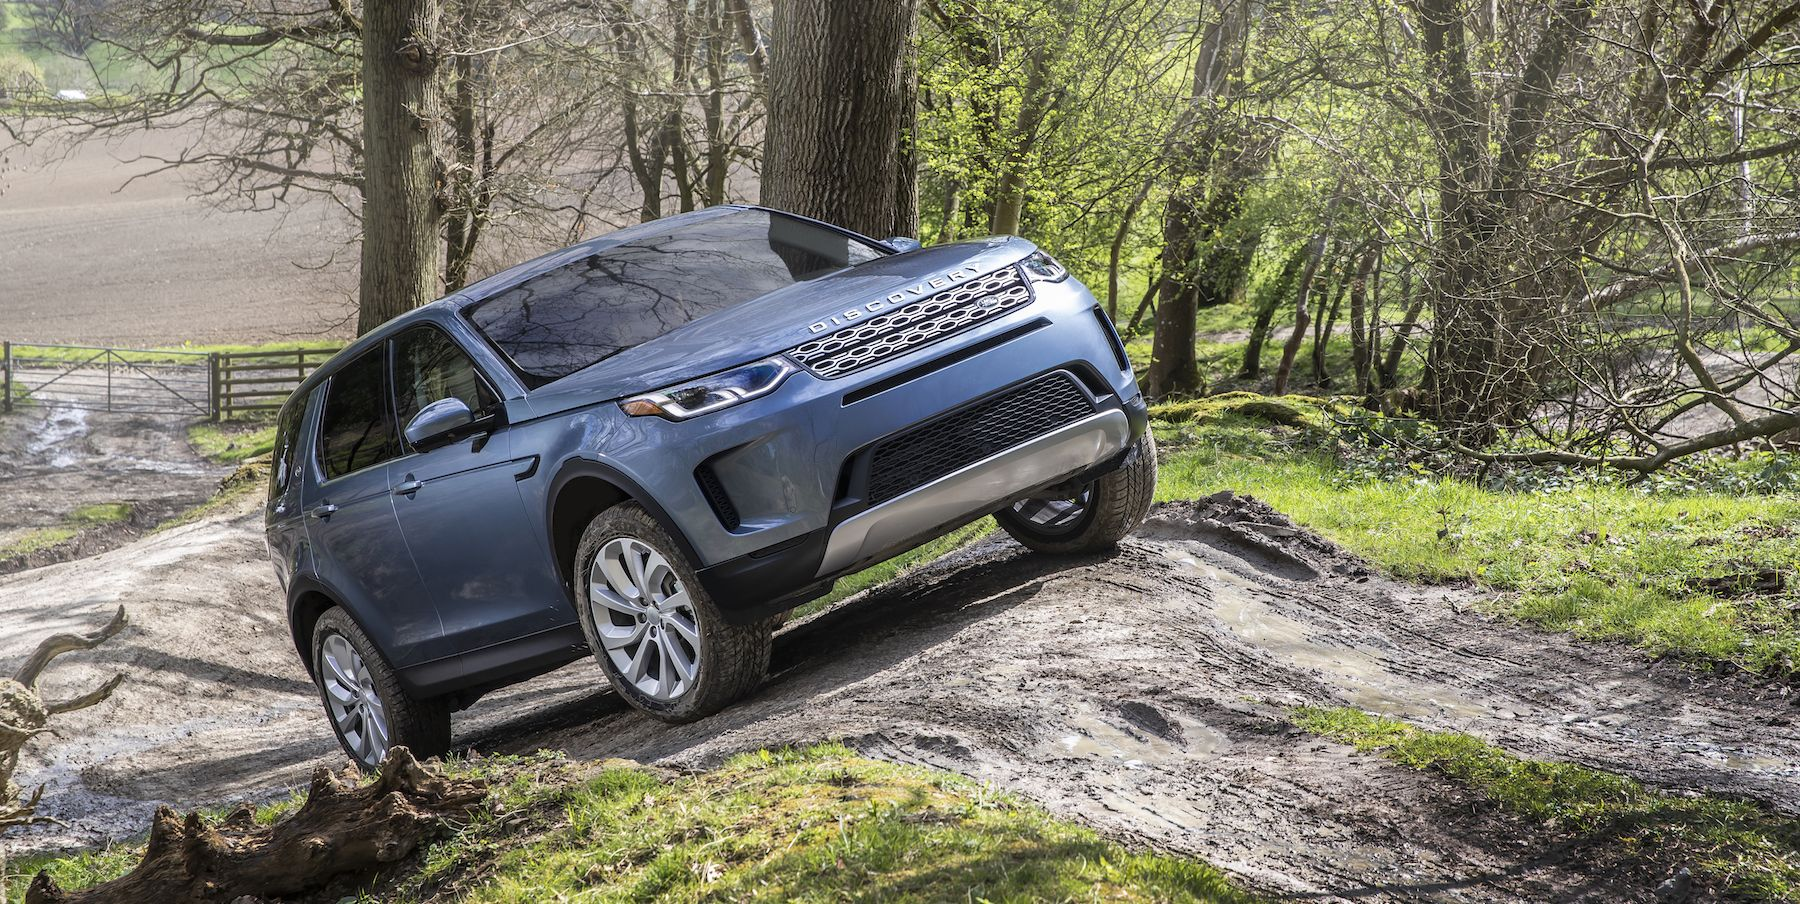 The 2020 Land Rover Discovery Sport Adds Style and a Hybrid Model